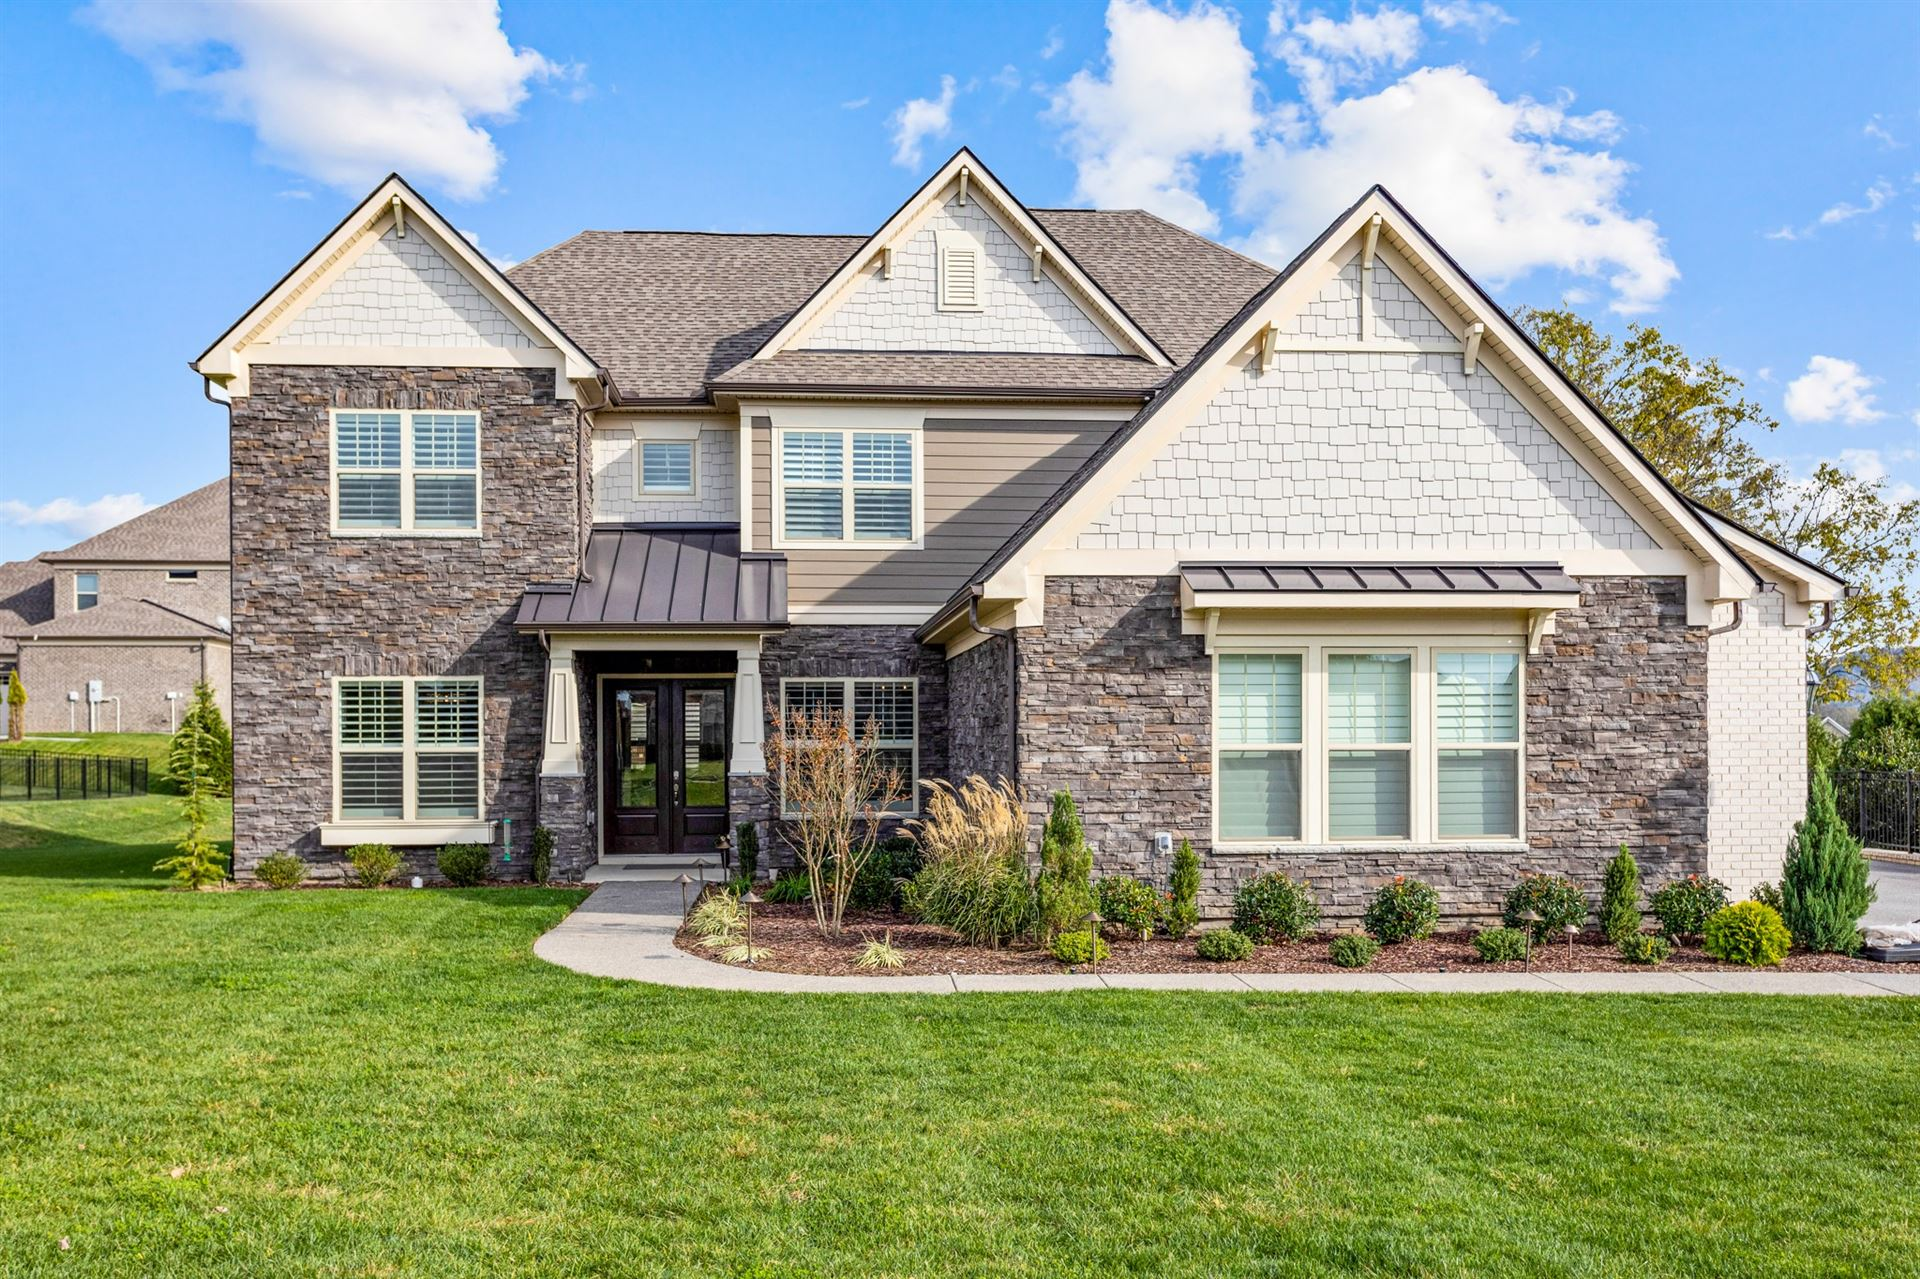 Photo of 1810 Legacy Cove Ln, Brentwood, TN 37027 (MLS # 2204689)